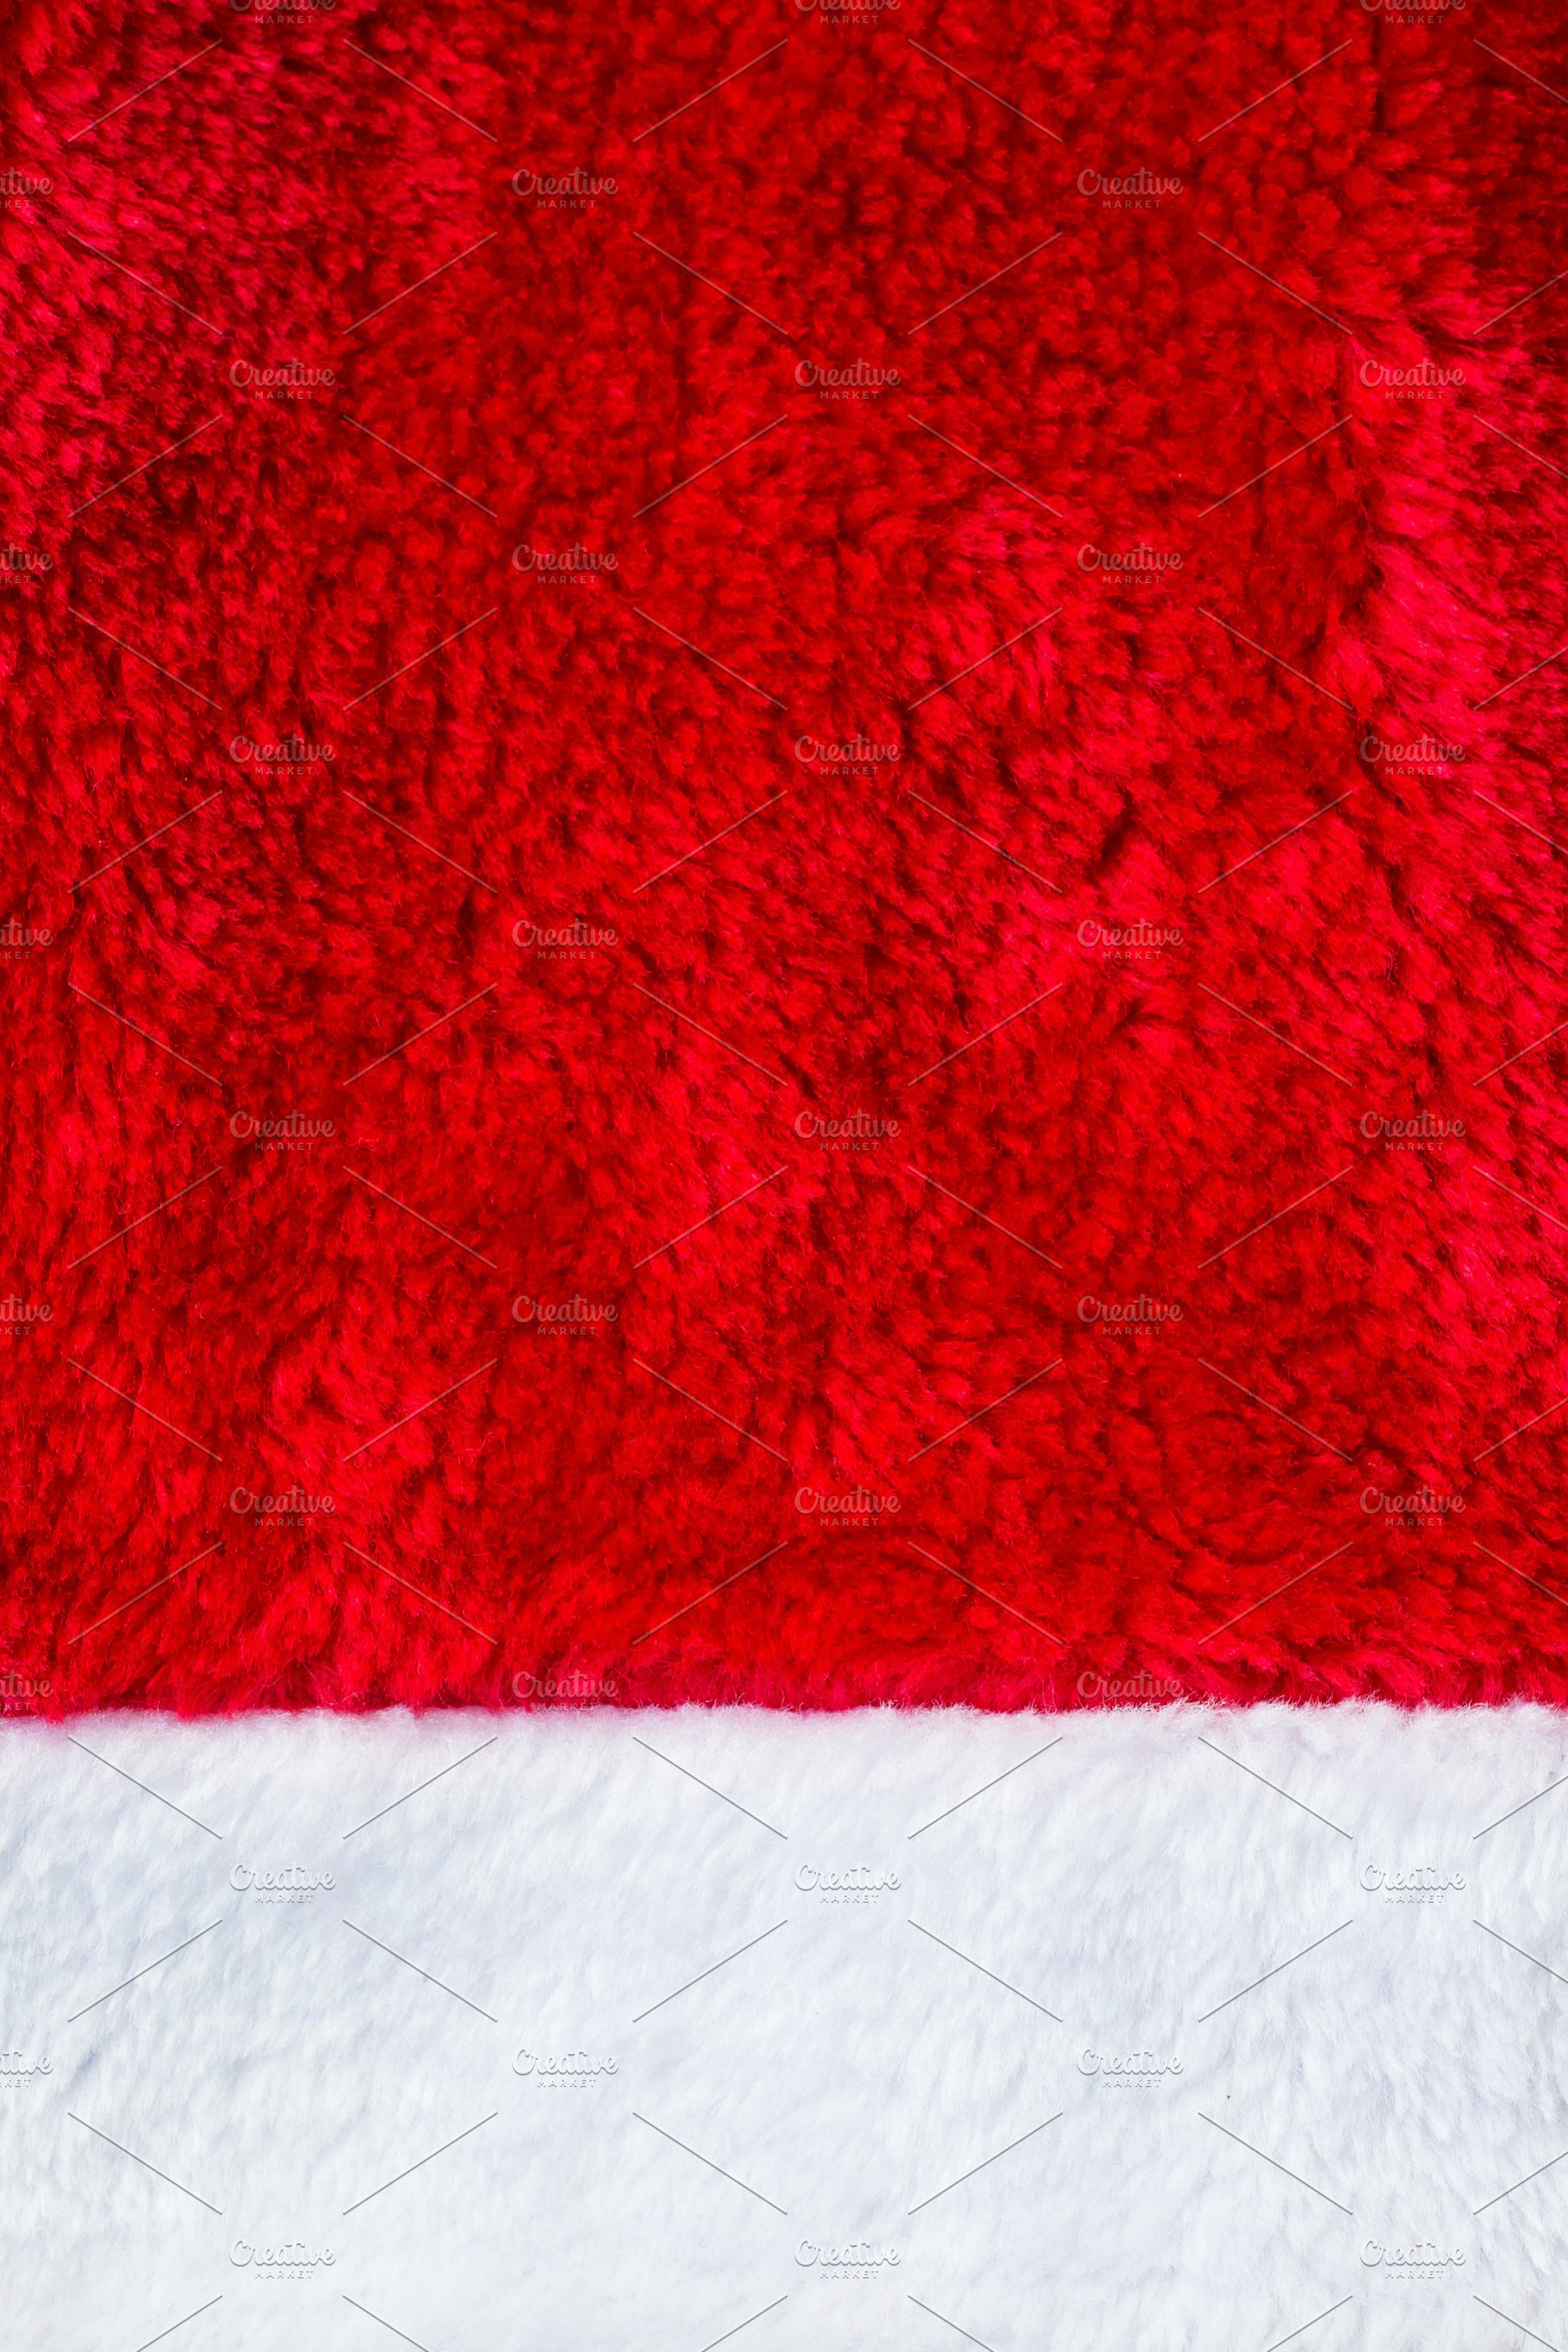 d1f8e3fa18e33 Close up red and white Santa Claus hat texture to backround ~ Photos ...